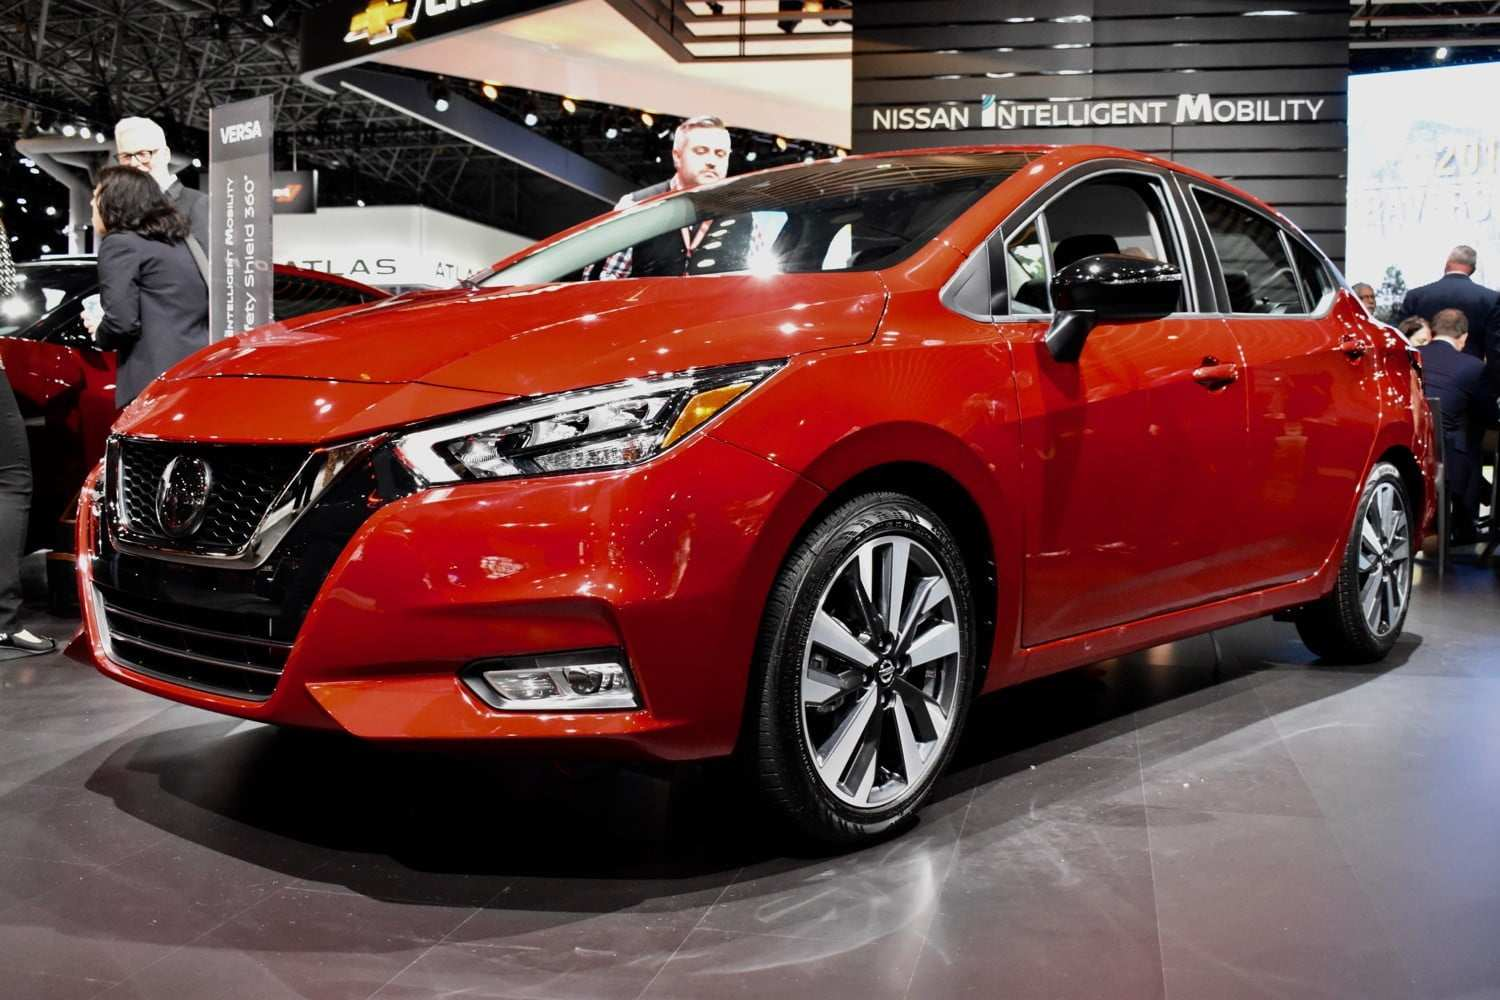 22 All New Nissan Versa 2020 Release Date Pricing